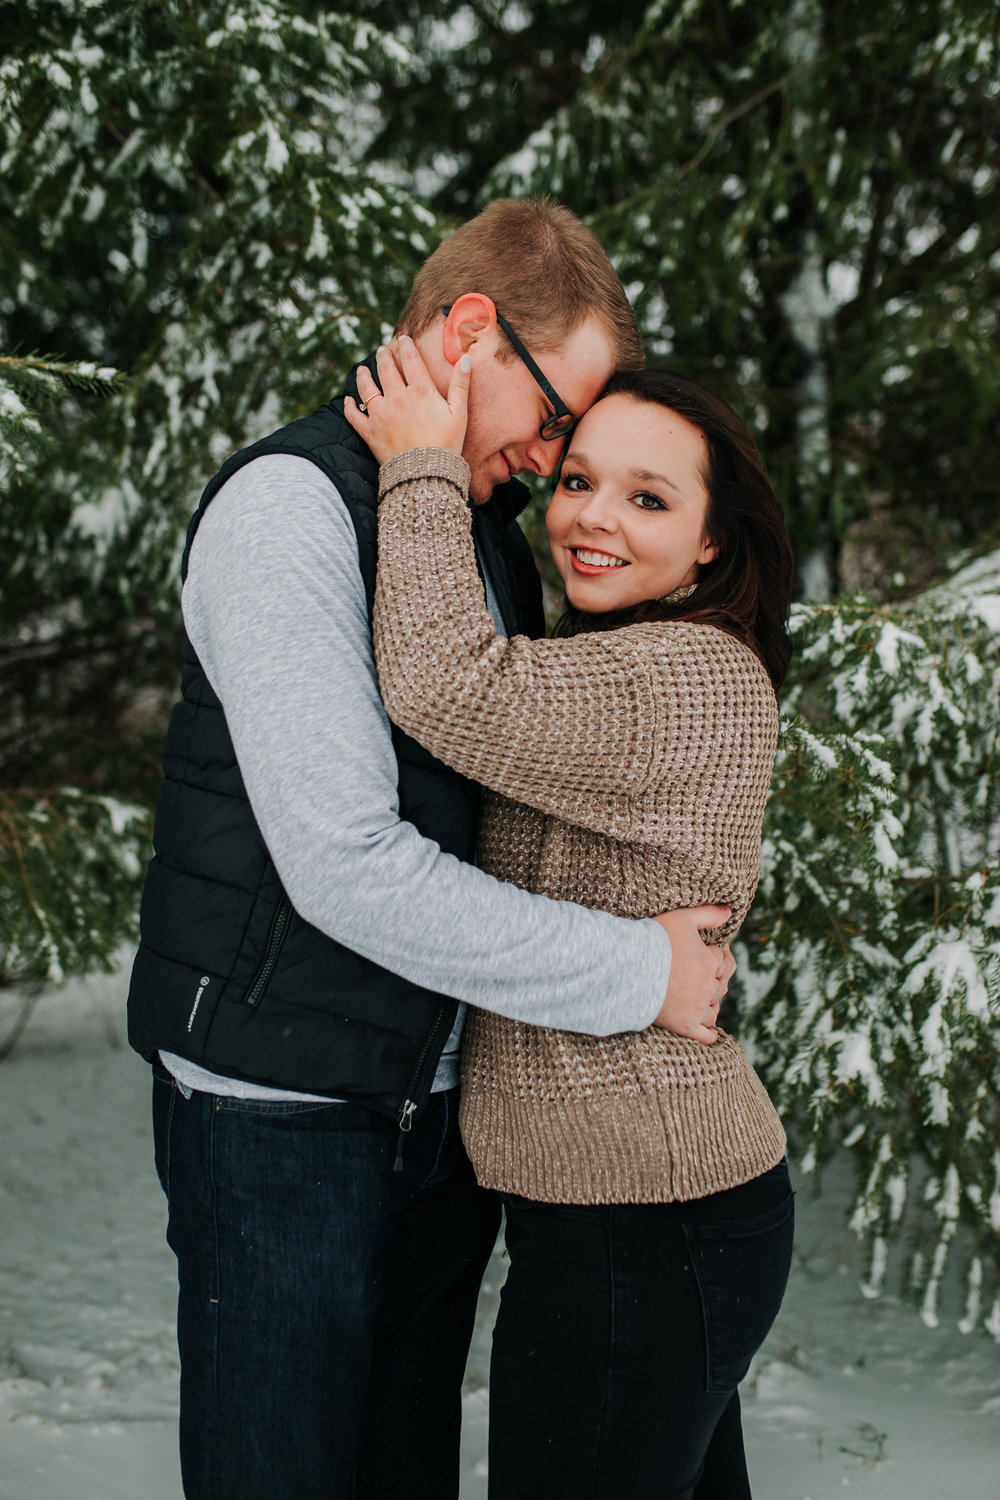 Vanessa & Dan - Engaged - Nathaniel Jensen Photography - Omaha Nebraska Wedding Photographer - Standing Bear Lake - Snowy Engagement Session-42.jpg